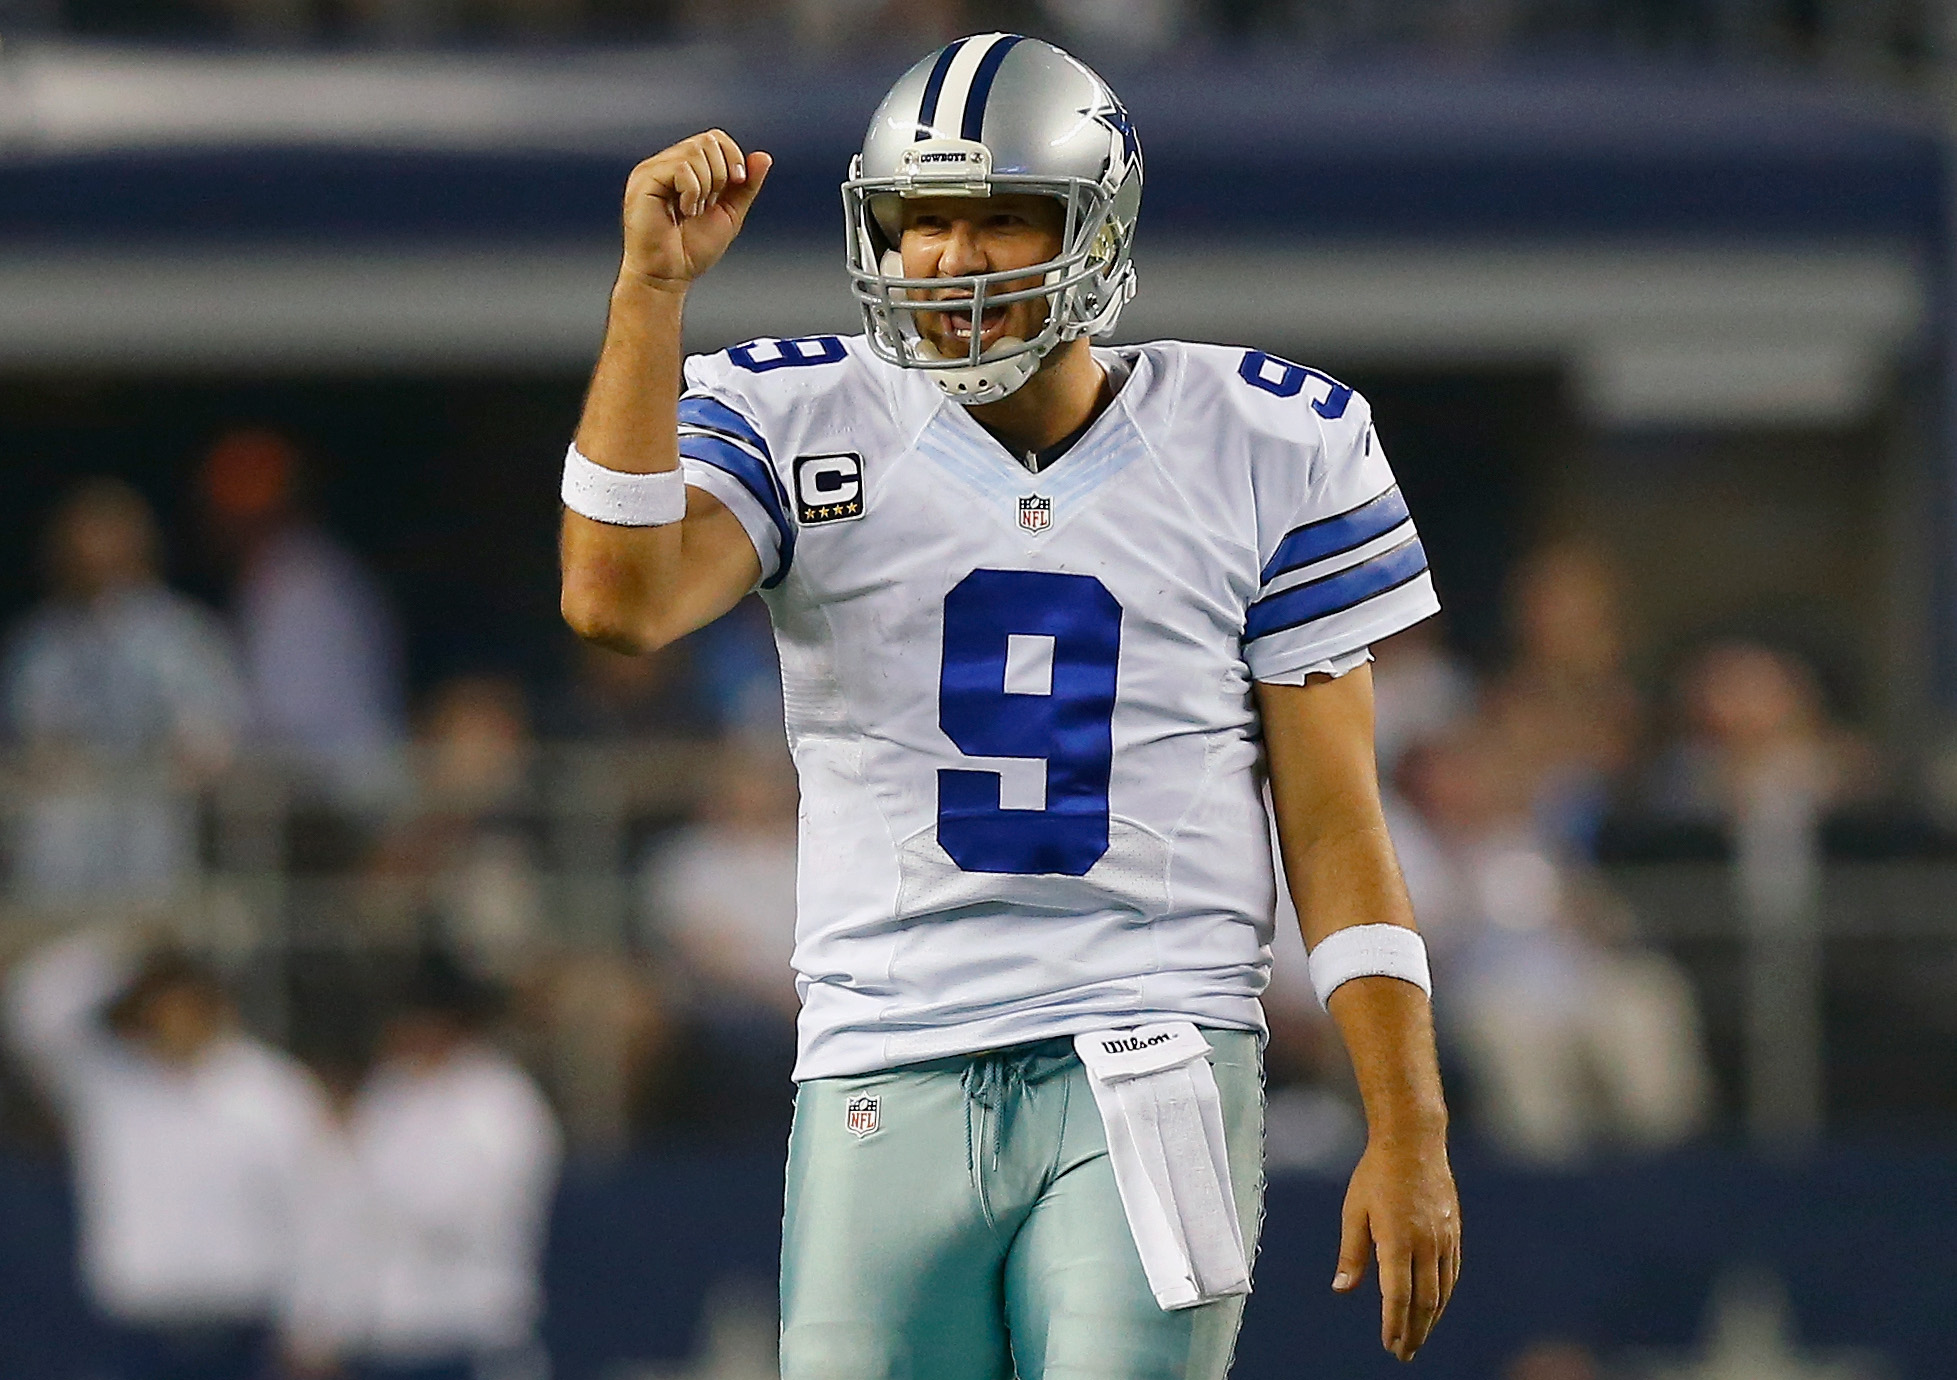 Tony Romo celebrates after a Cowboys play